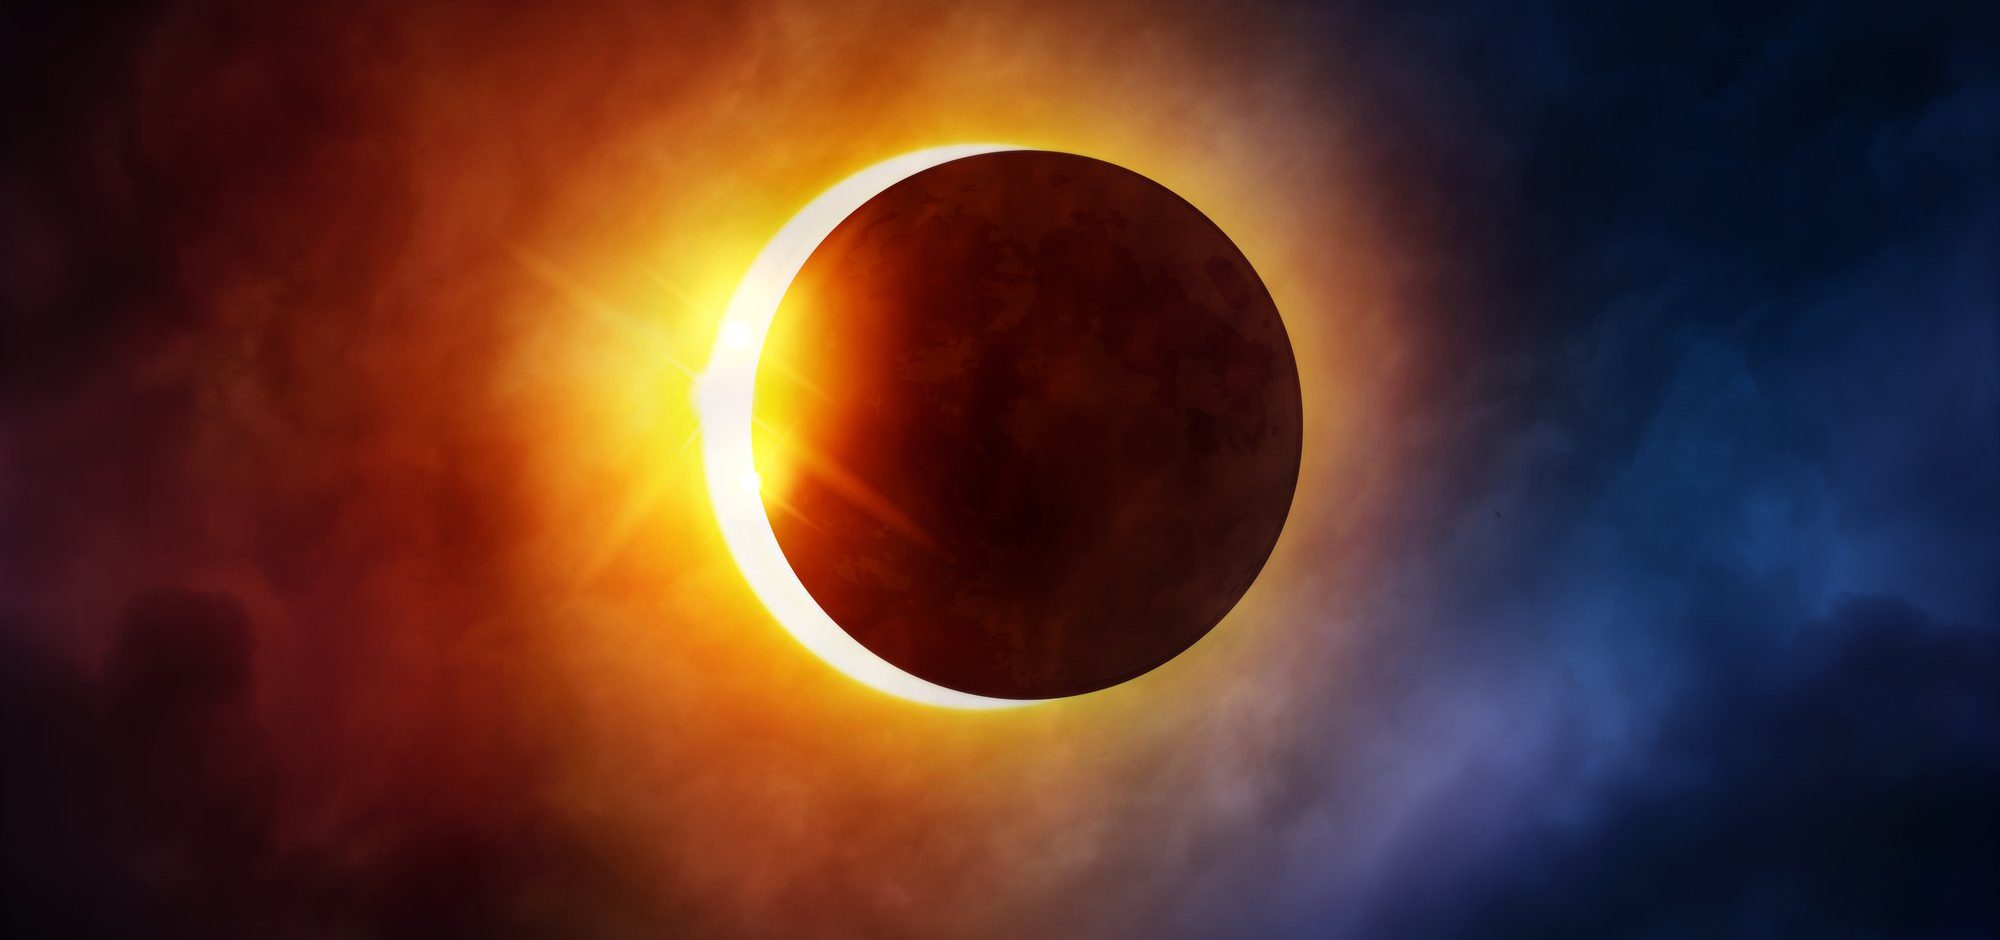 Solar eclipse 2019: how will it influence your zodiac sign? - WeMystic